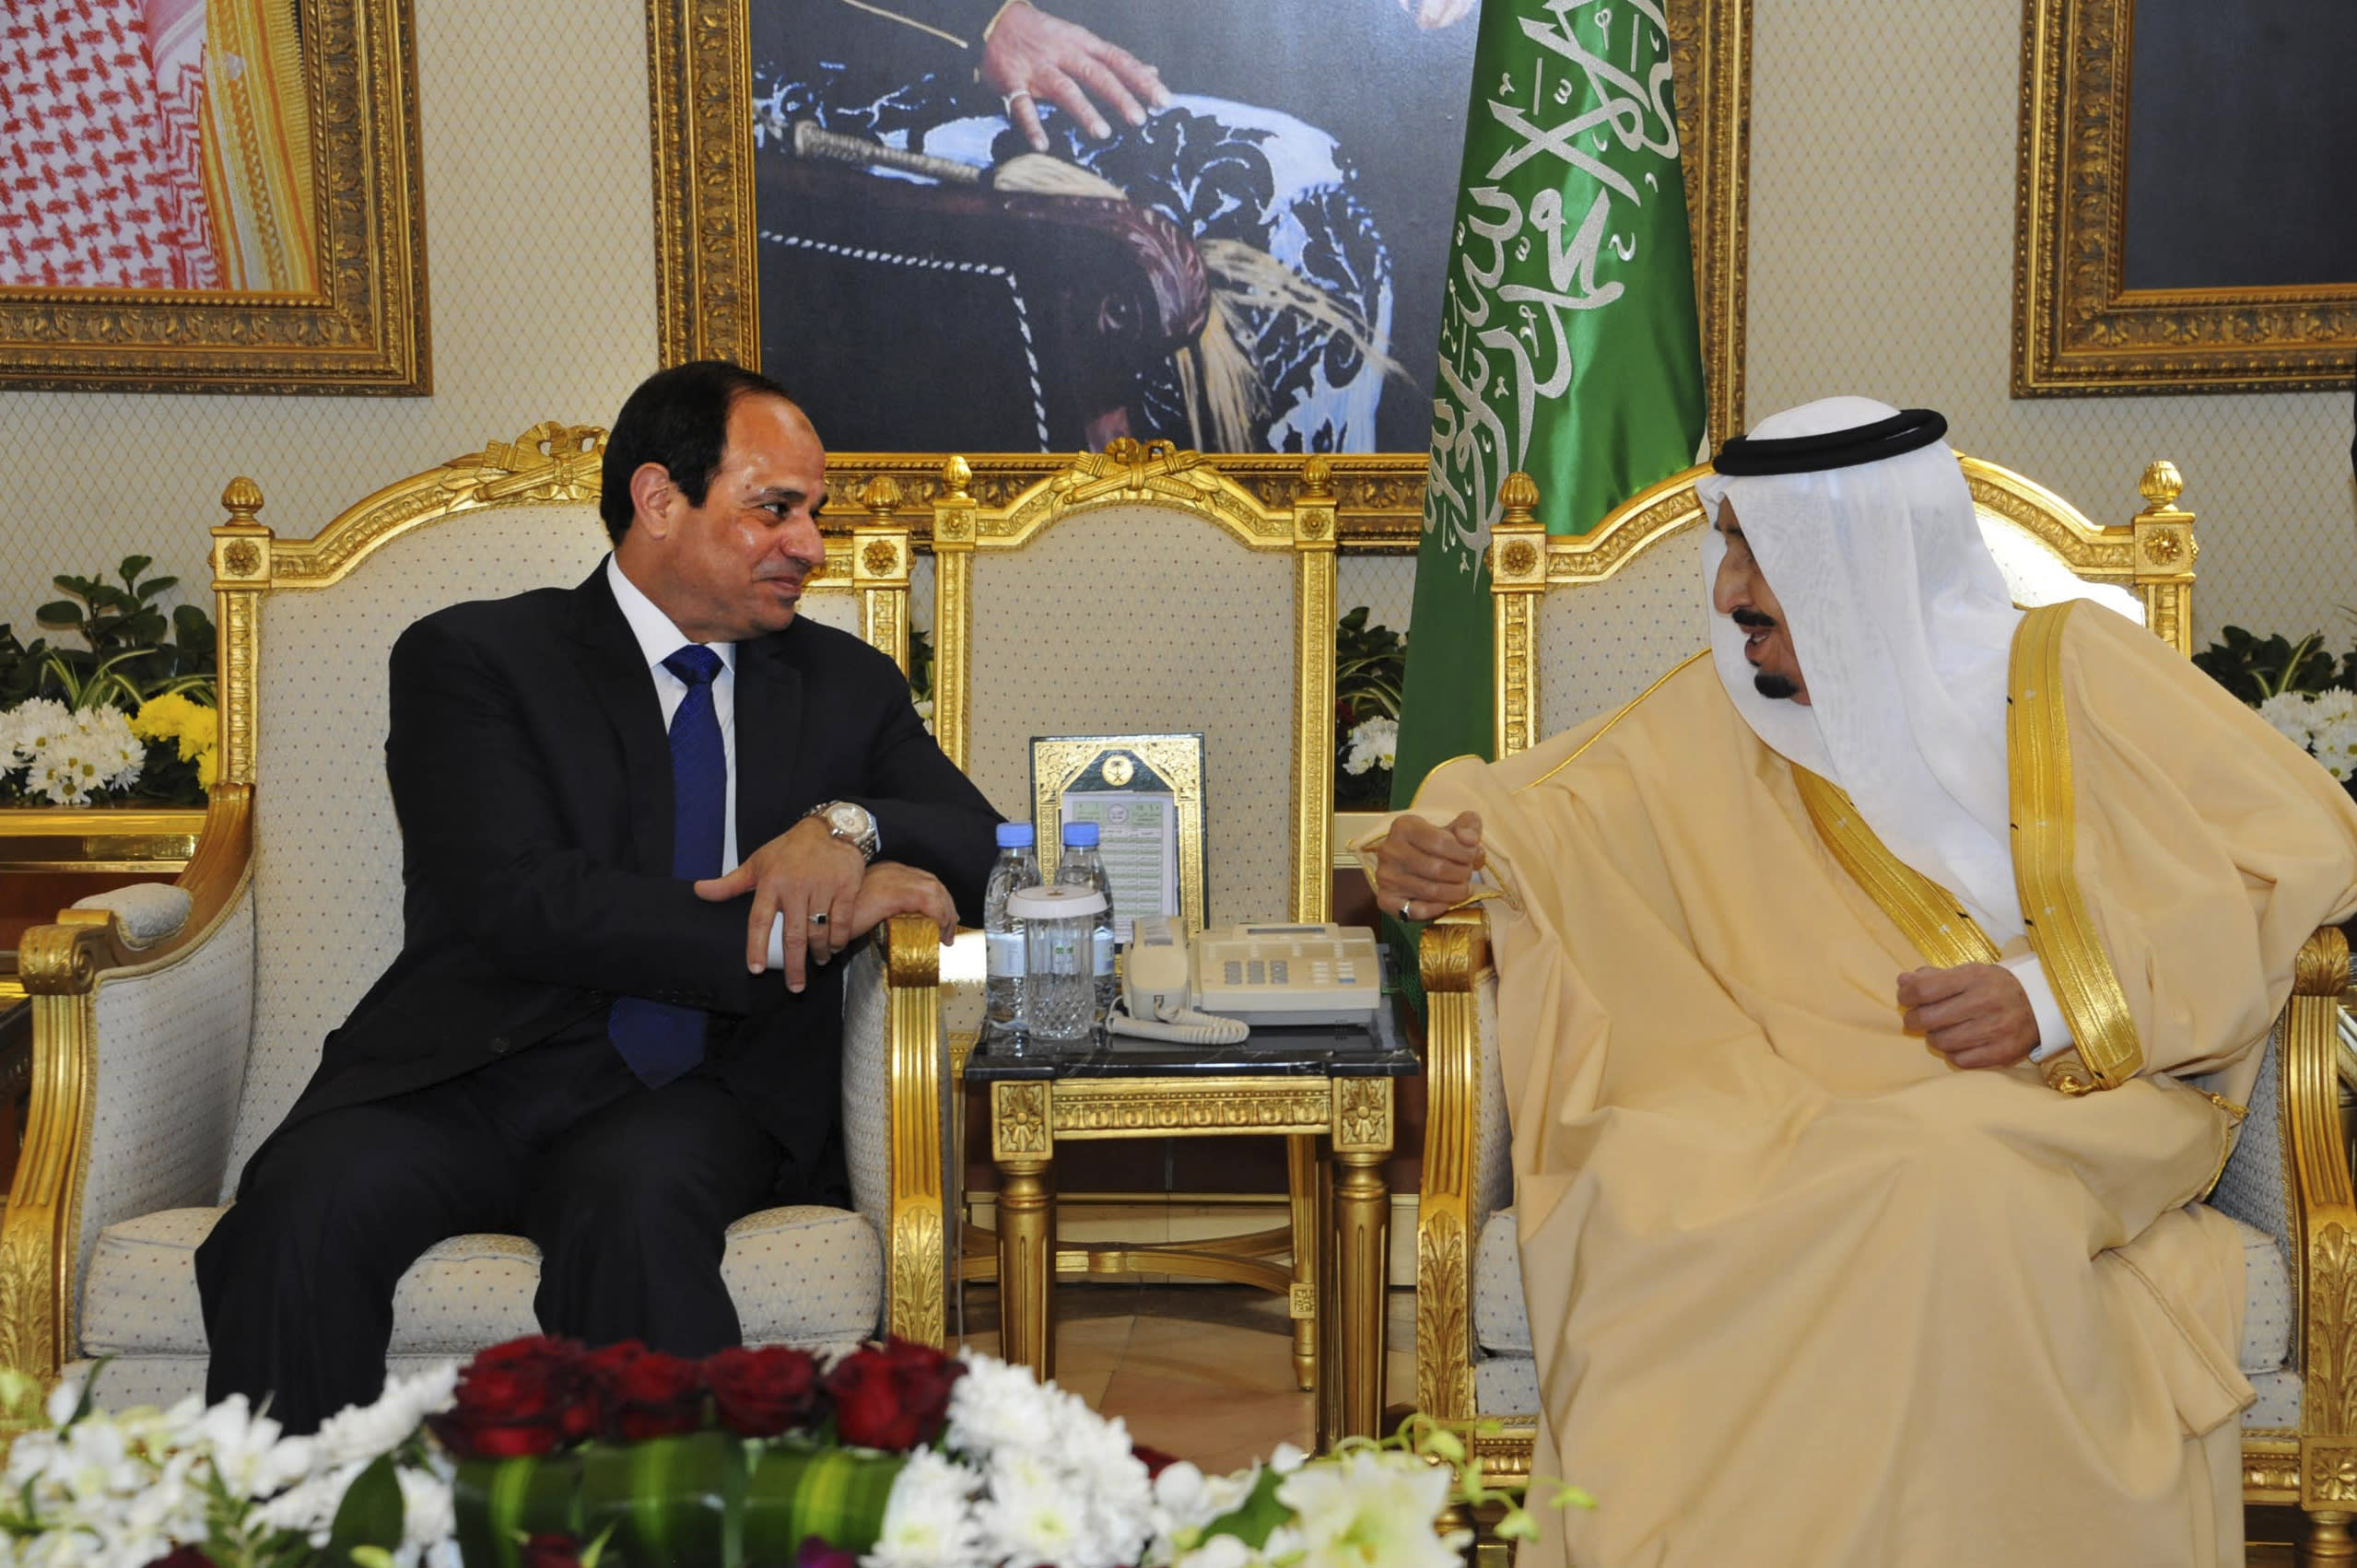 Egypt's president in Saudi Arabia for talks with new king